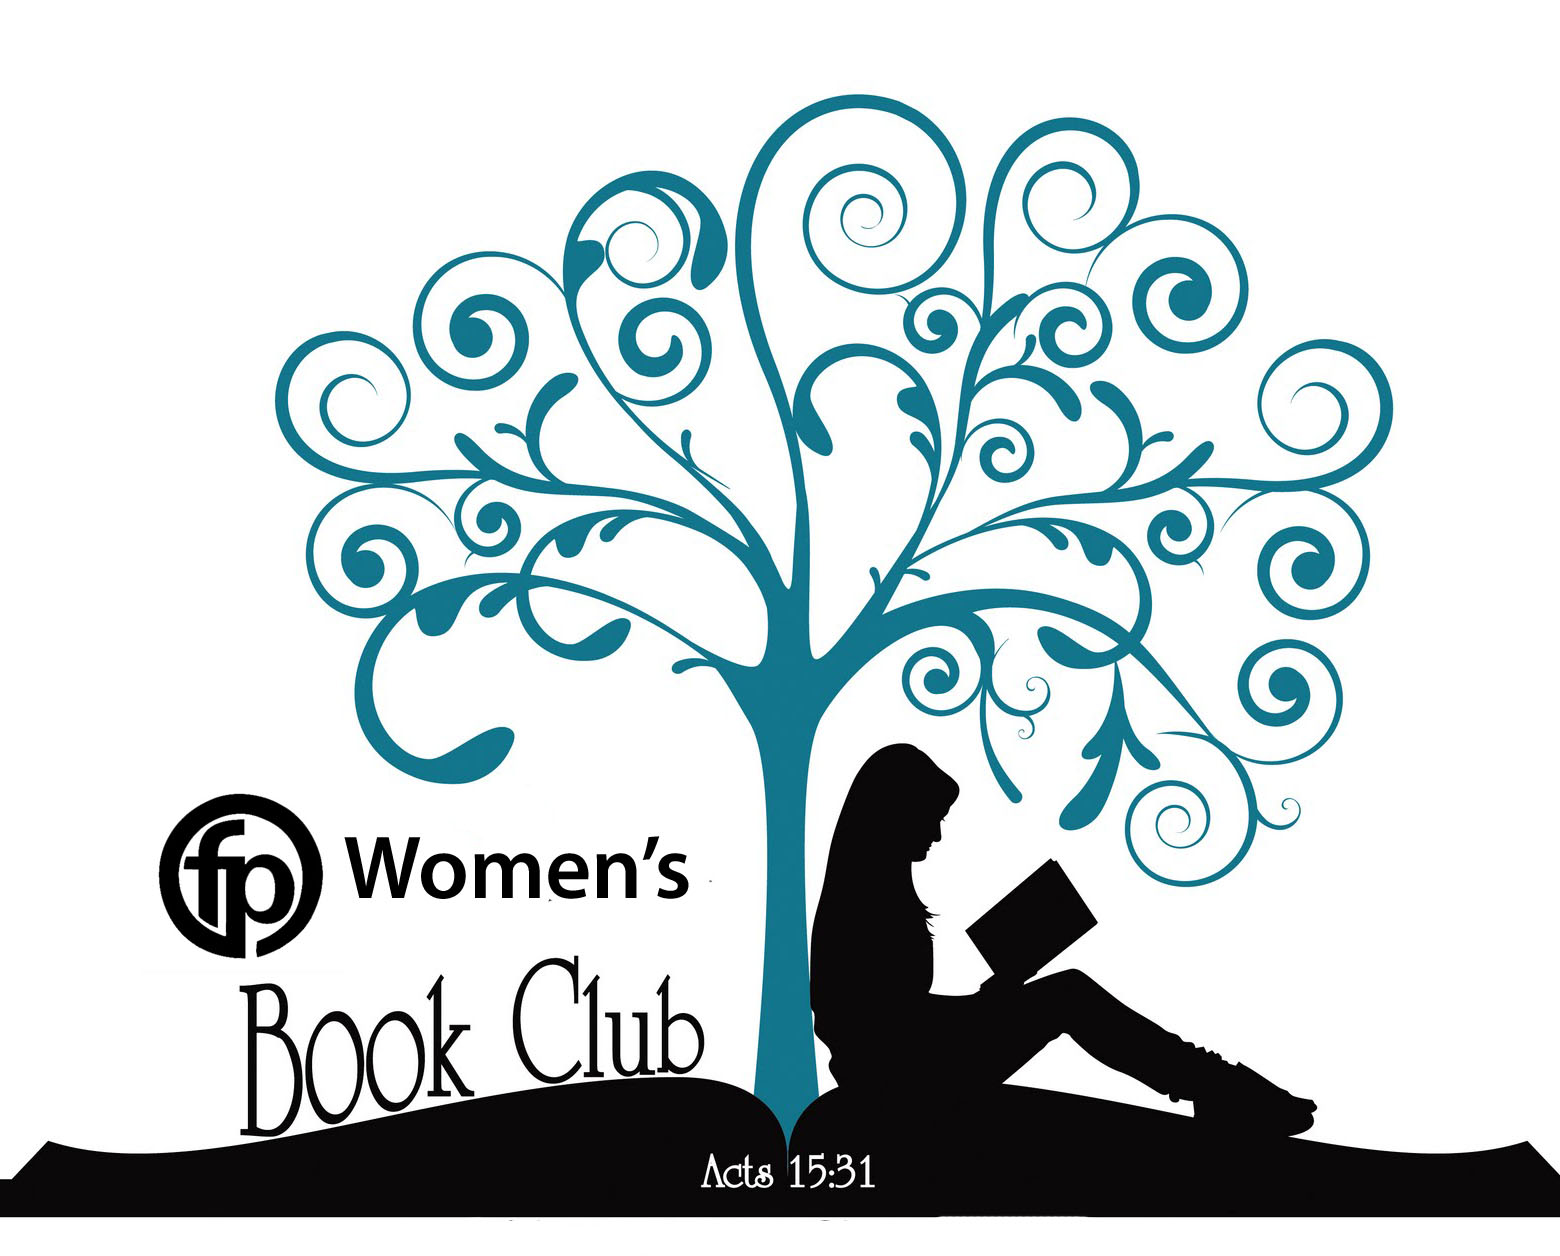 FP Women's Book Club